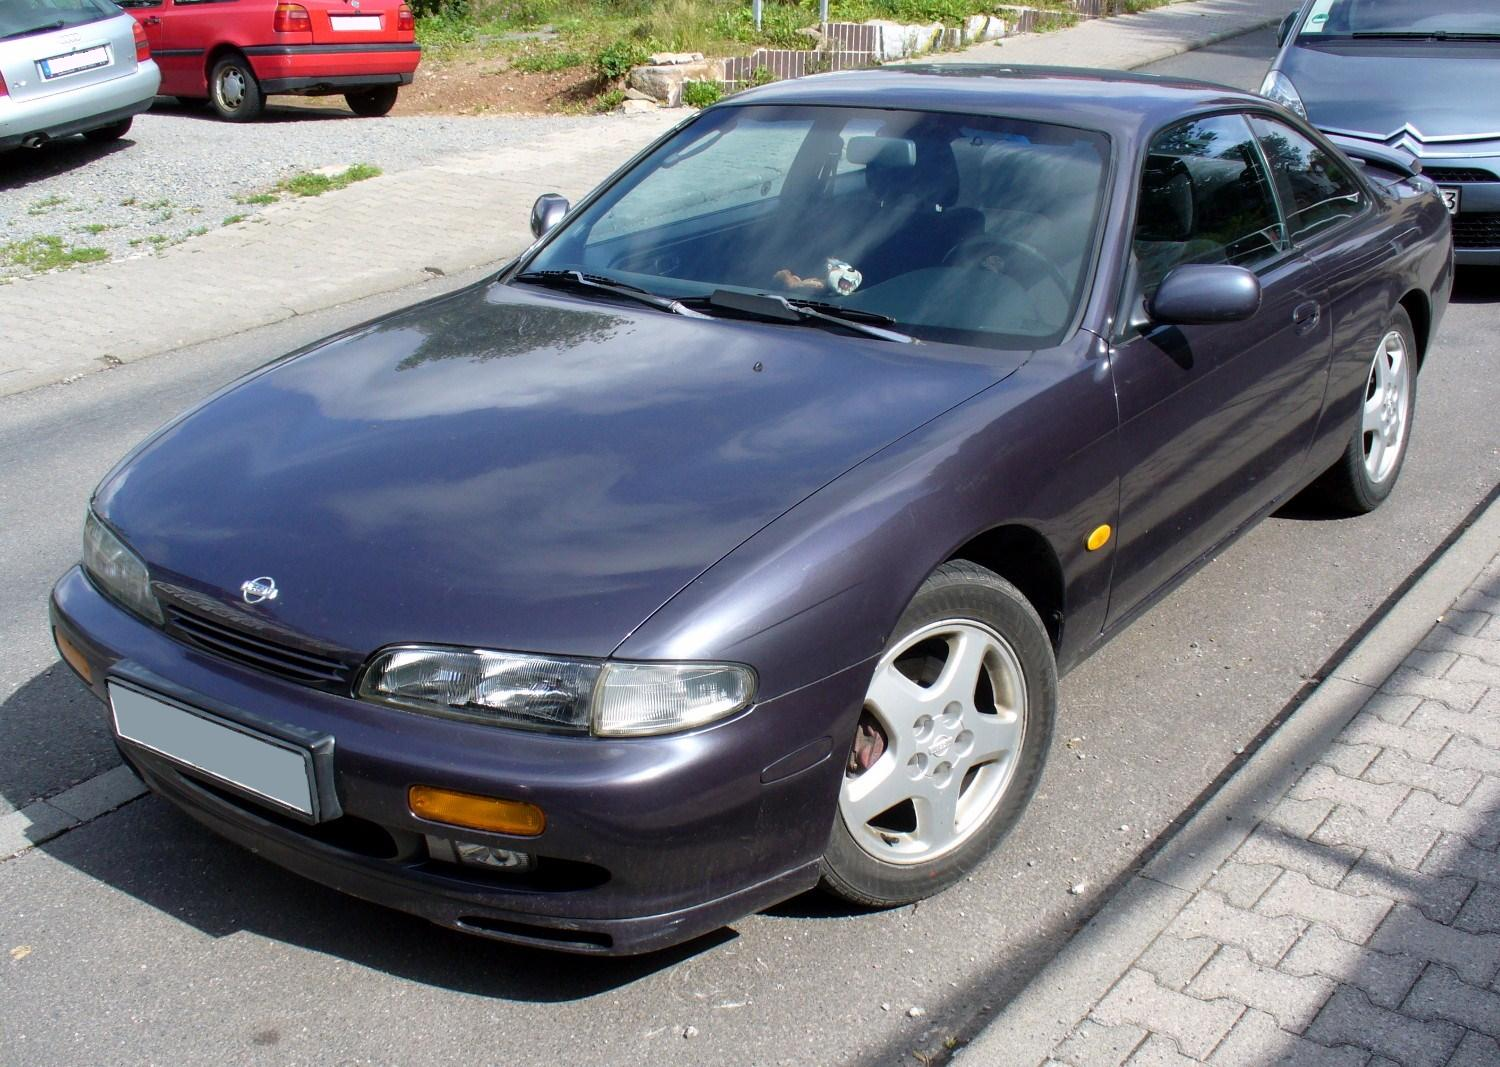 1990 nissan 200 sx s13 pictures information and specs auto. Black Bedroom Furniture Sets. Home Design Ideas